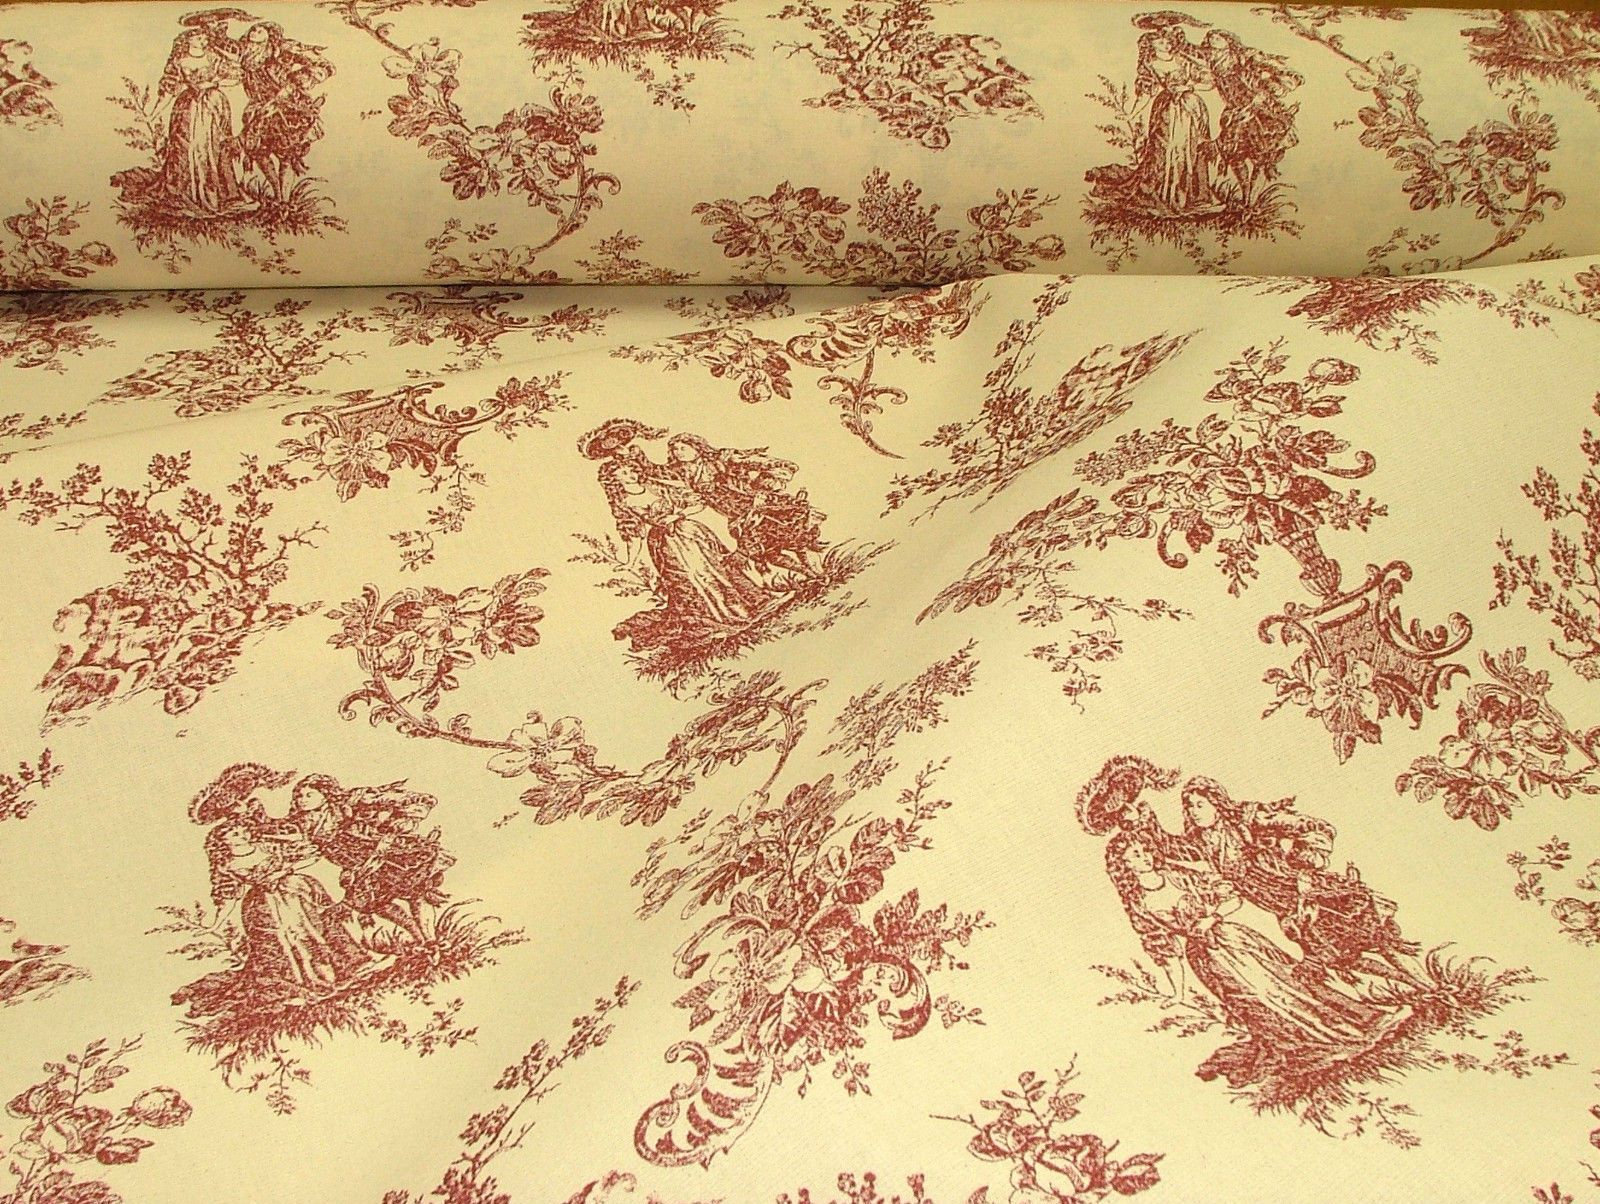 Toile De Jouy Bettwäsche Red And Natural Cream Linen Look Toile De Jouy Curtain